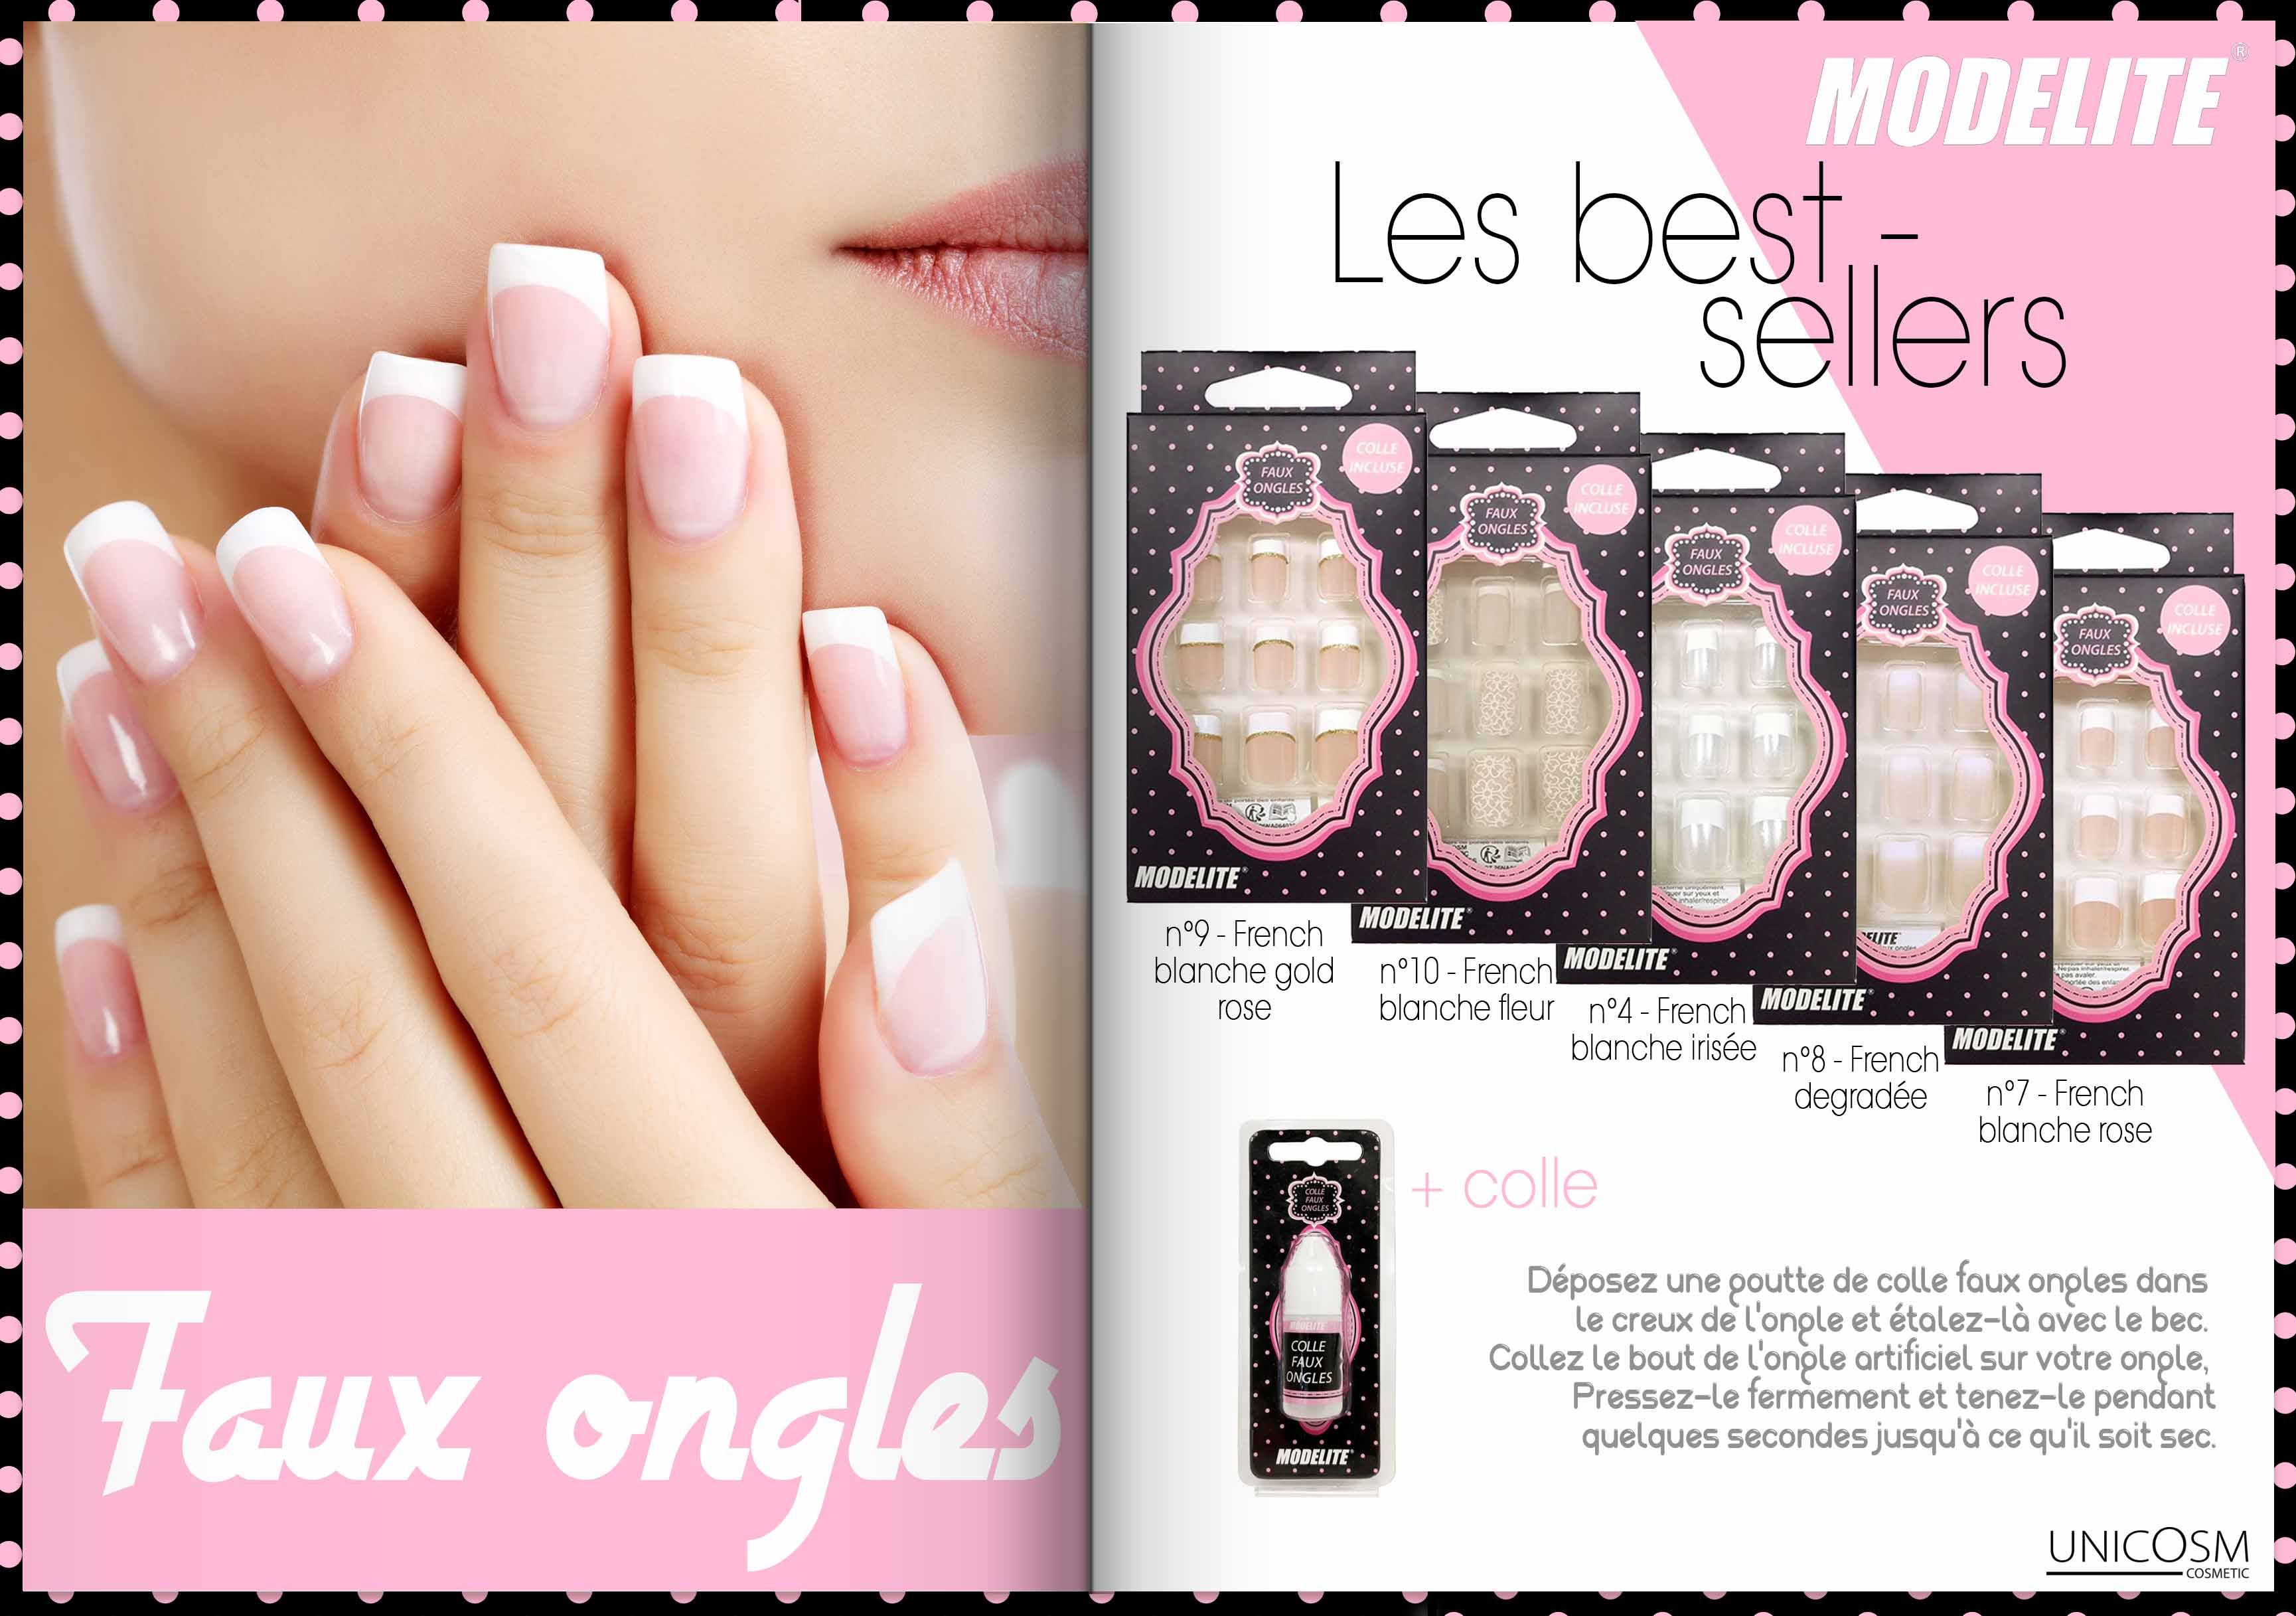 Best sellers faux ongles MODELITE